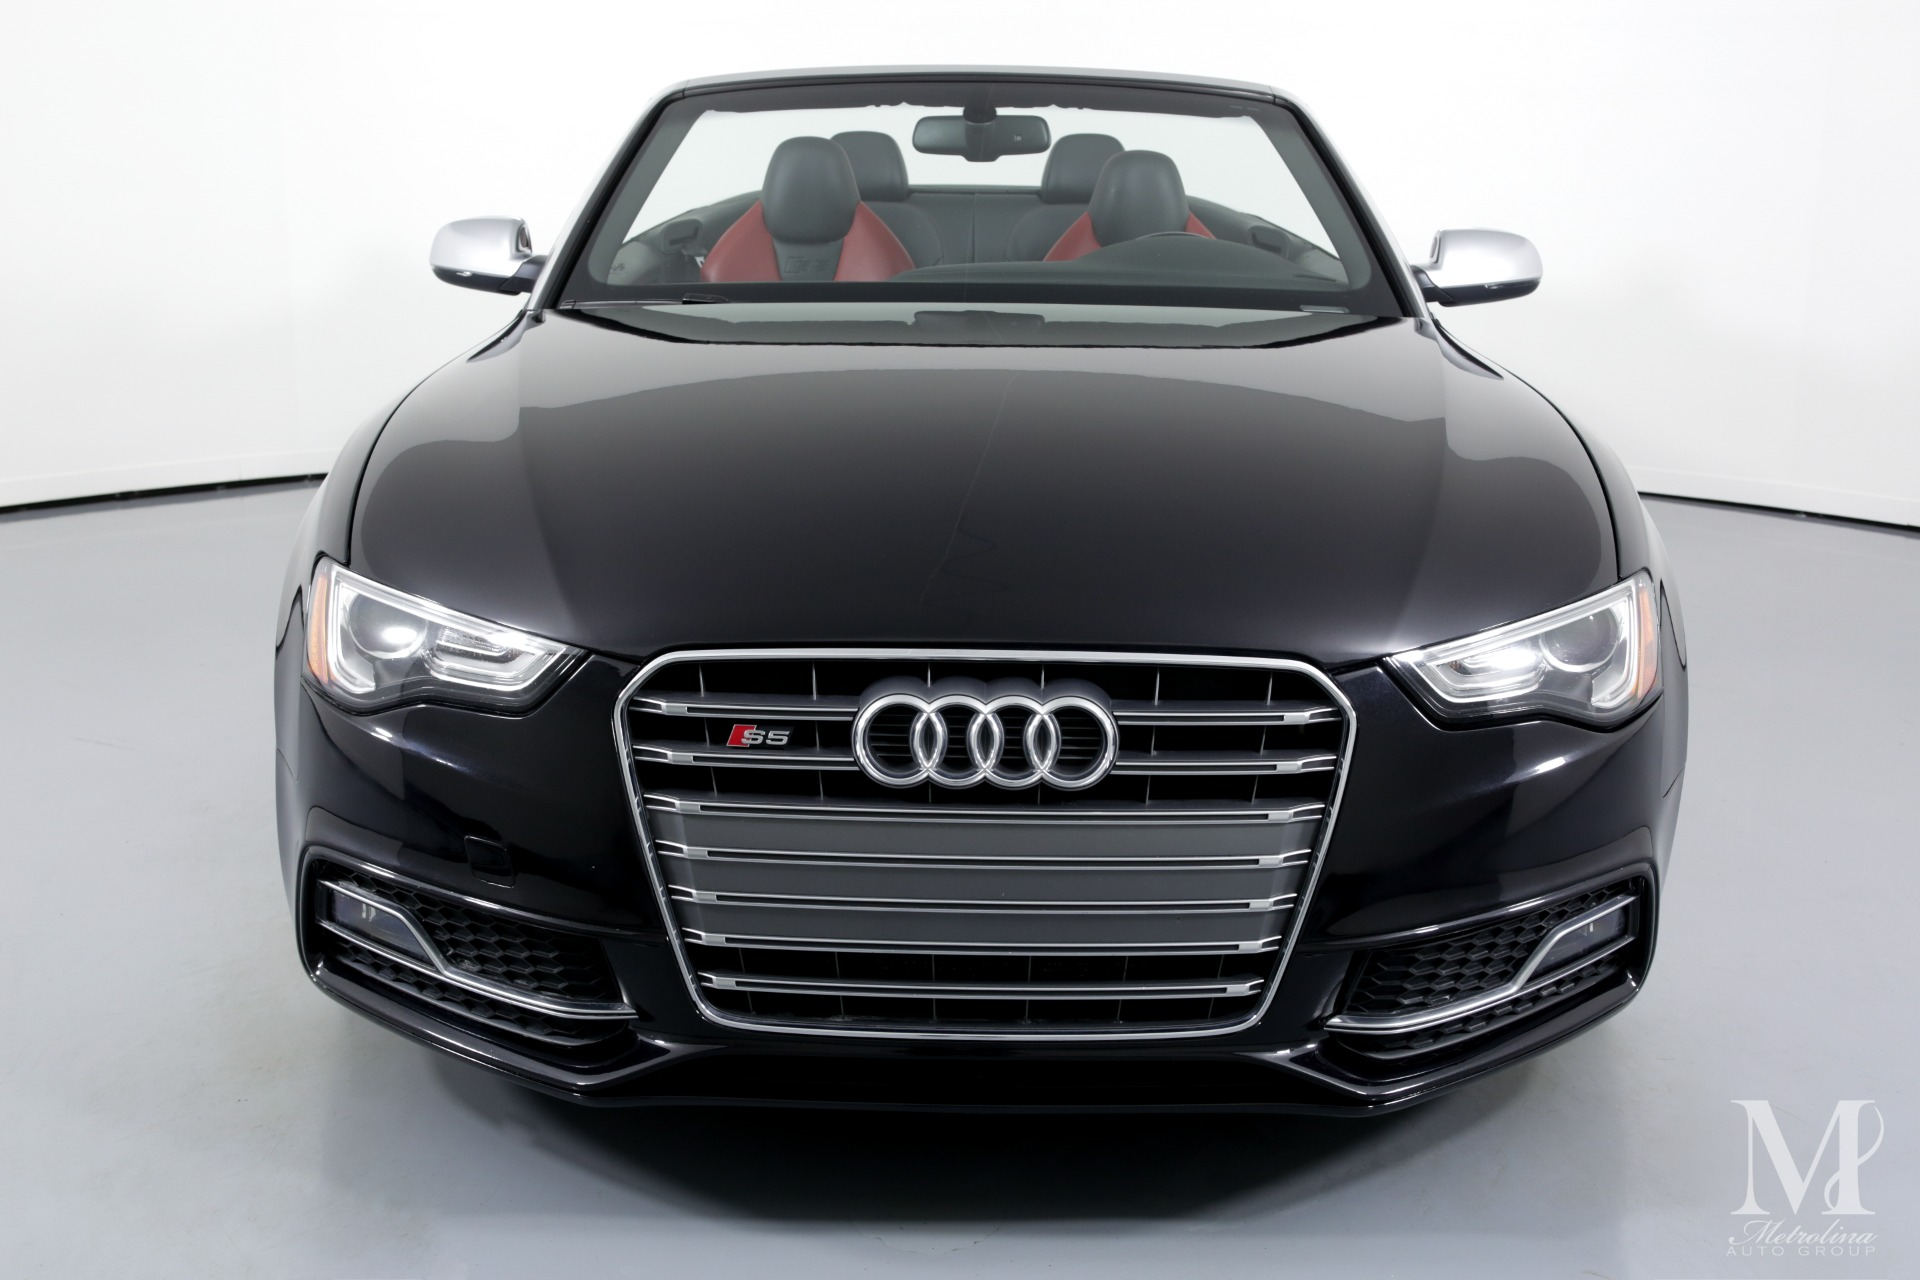 Used 2014 Audi S5 3.0T quattro Premium Plus AWD 2dr Convertible for sale $24,995 at Metrolina Auto Group in Charlotte NC 28217 - 4